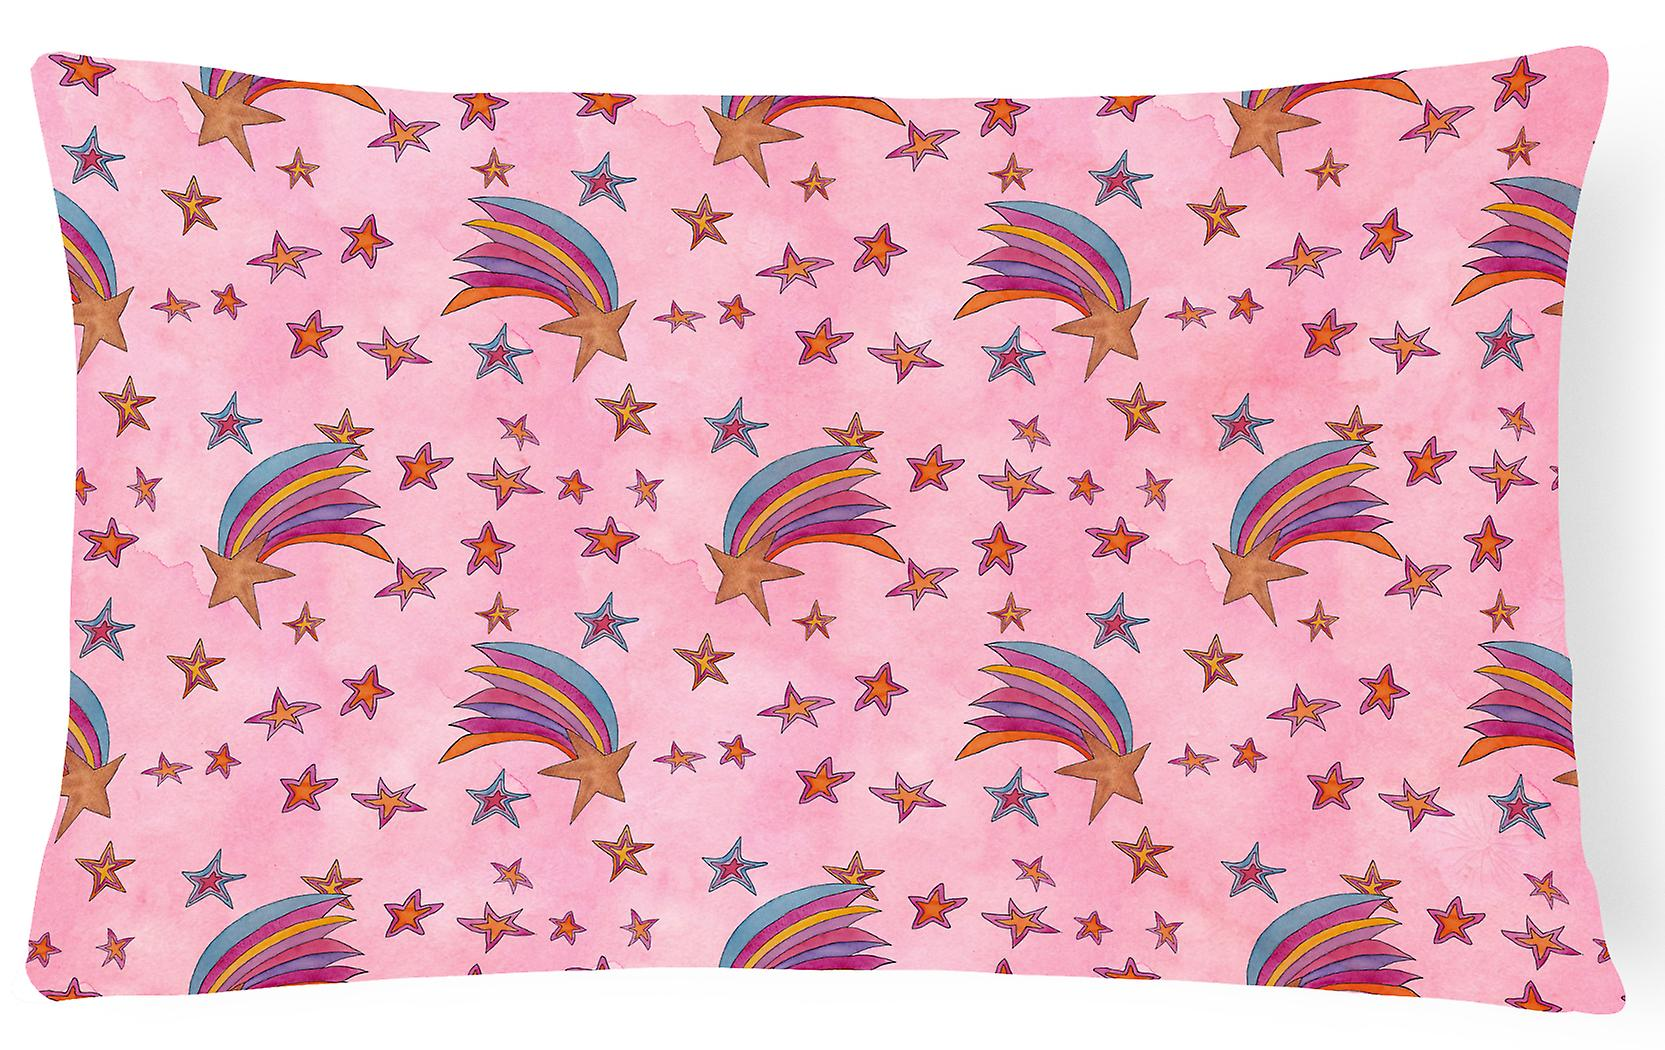 Fabric On Pillow Stars Watercolor Decorative Canvas Shooting Pink UpVSzqM